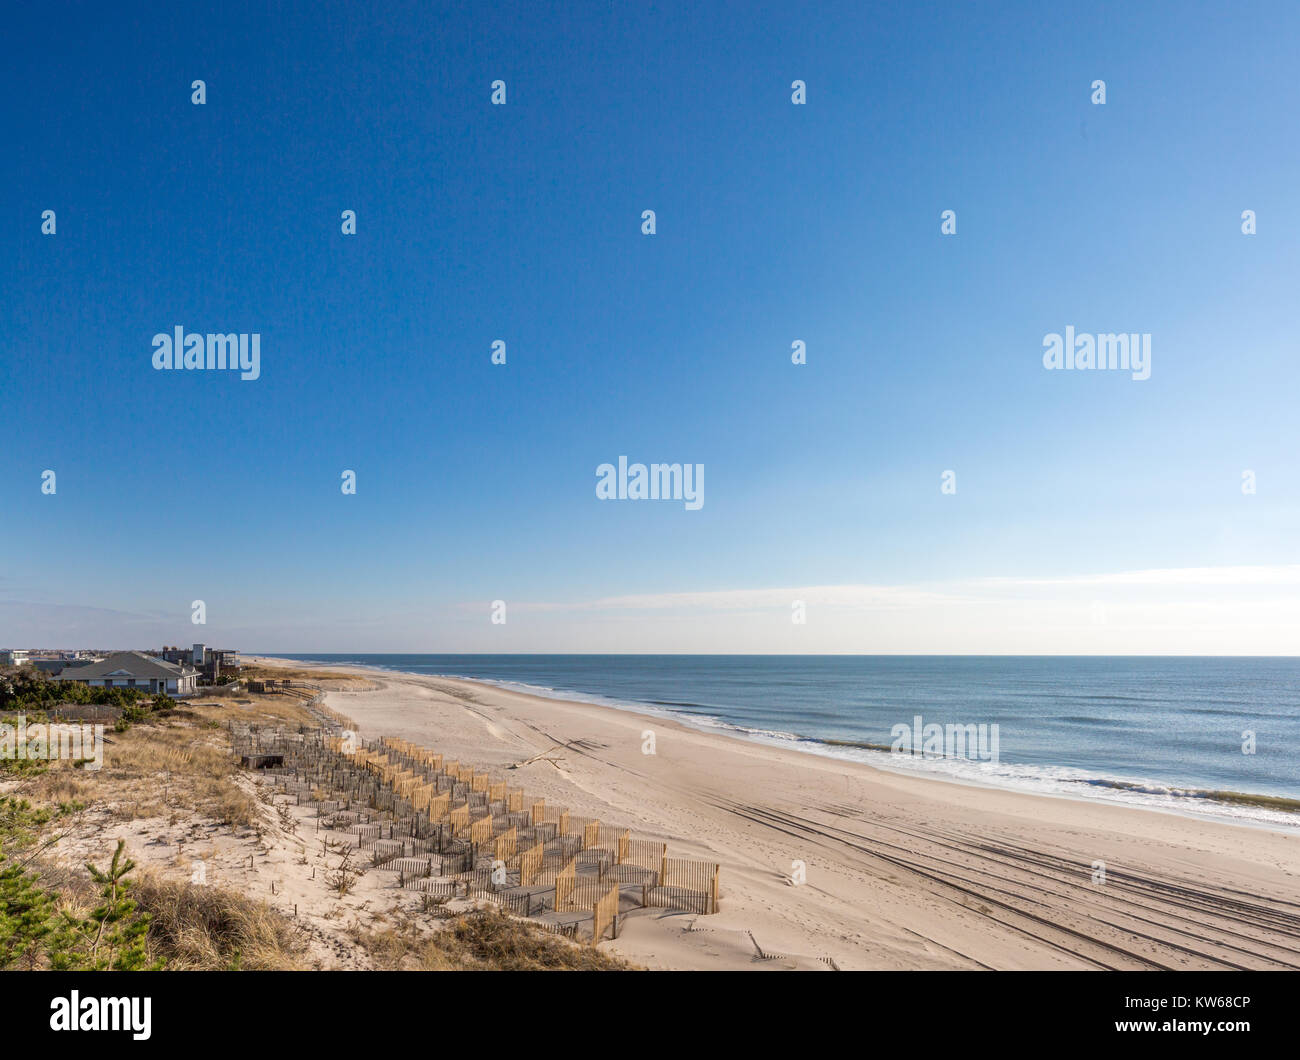 beach fencing on a atlantic beach in the hamptons - Stock Image